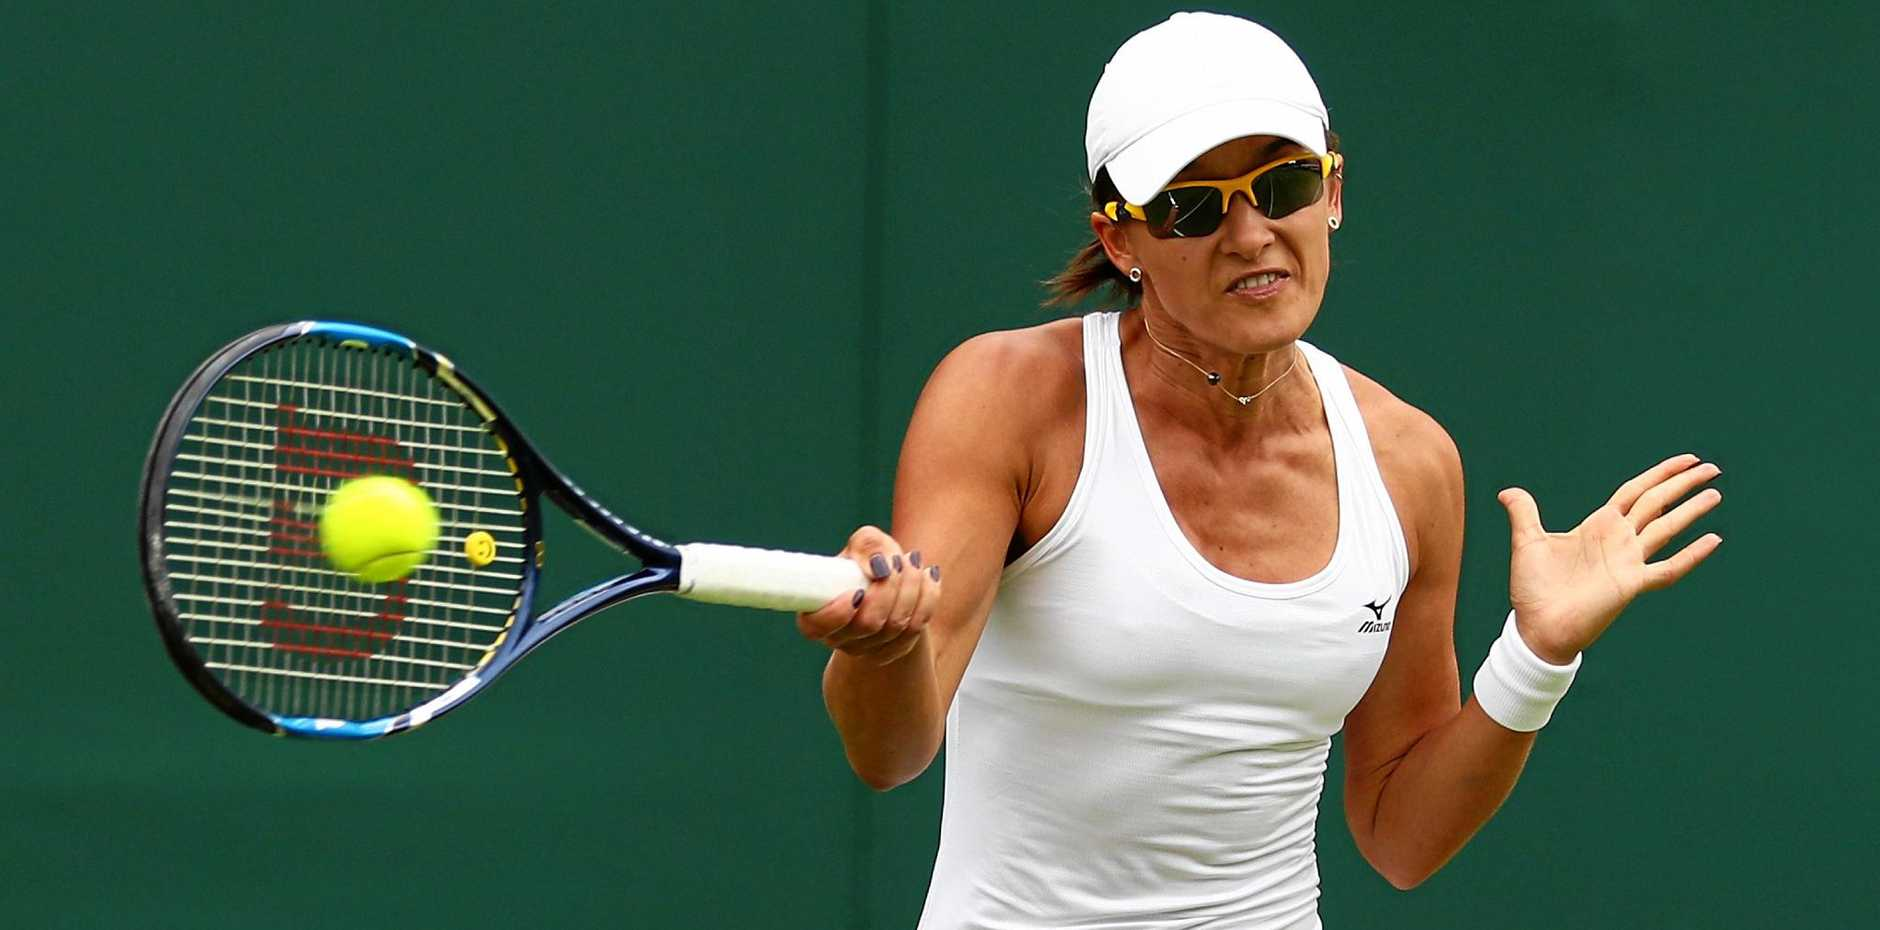 LONE AUSSIE: Arina Rodionova fended off seven match points to beat Anastasia Pavlyuchenkova and advance to the second round of Wimbledon. Rodionova is the only remaining Australian player in the round of 64.